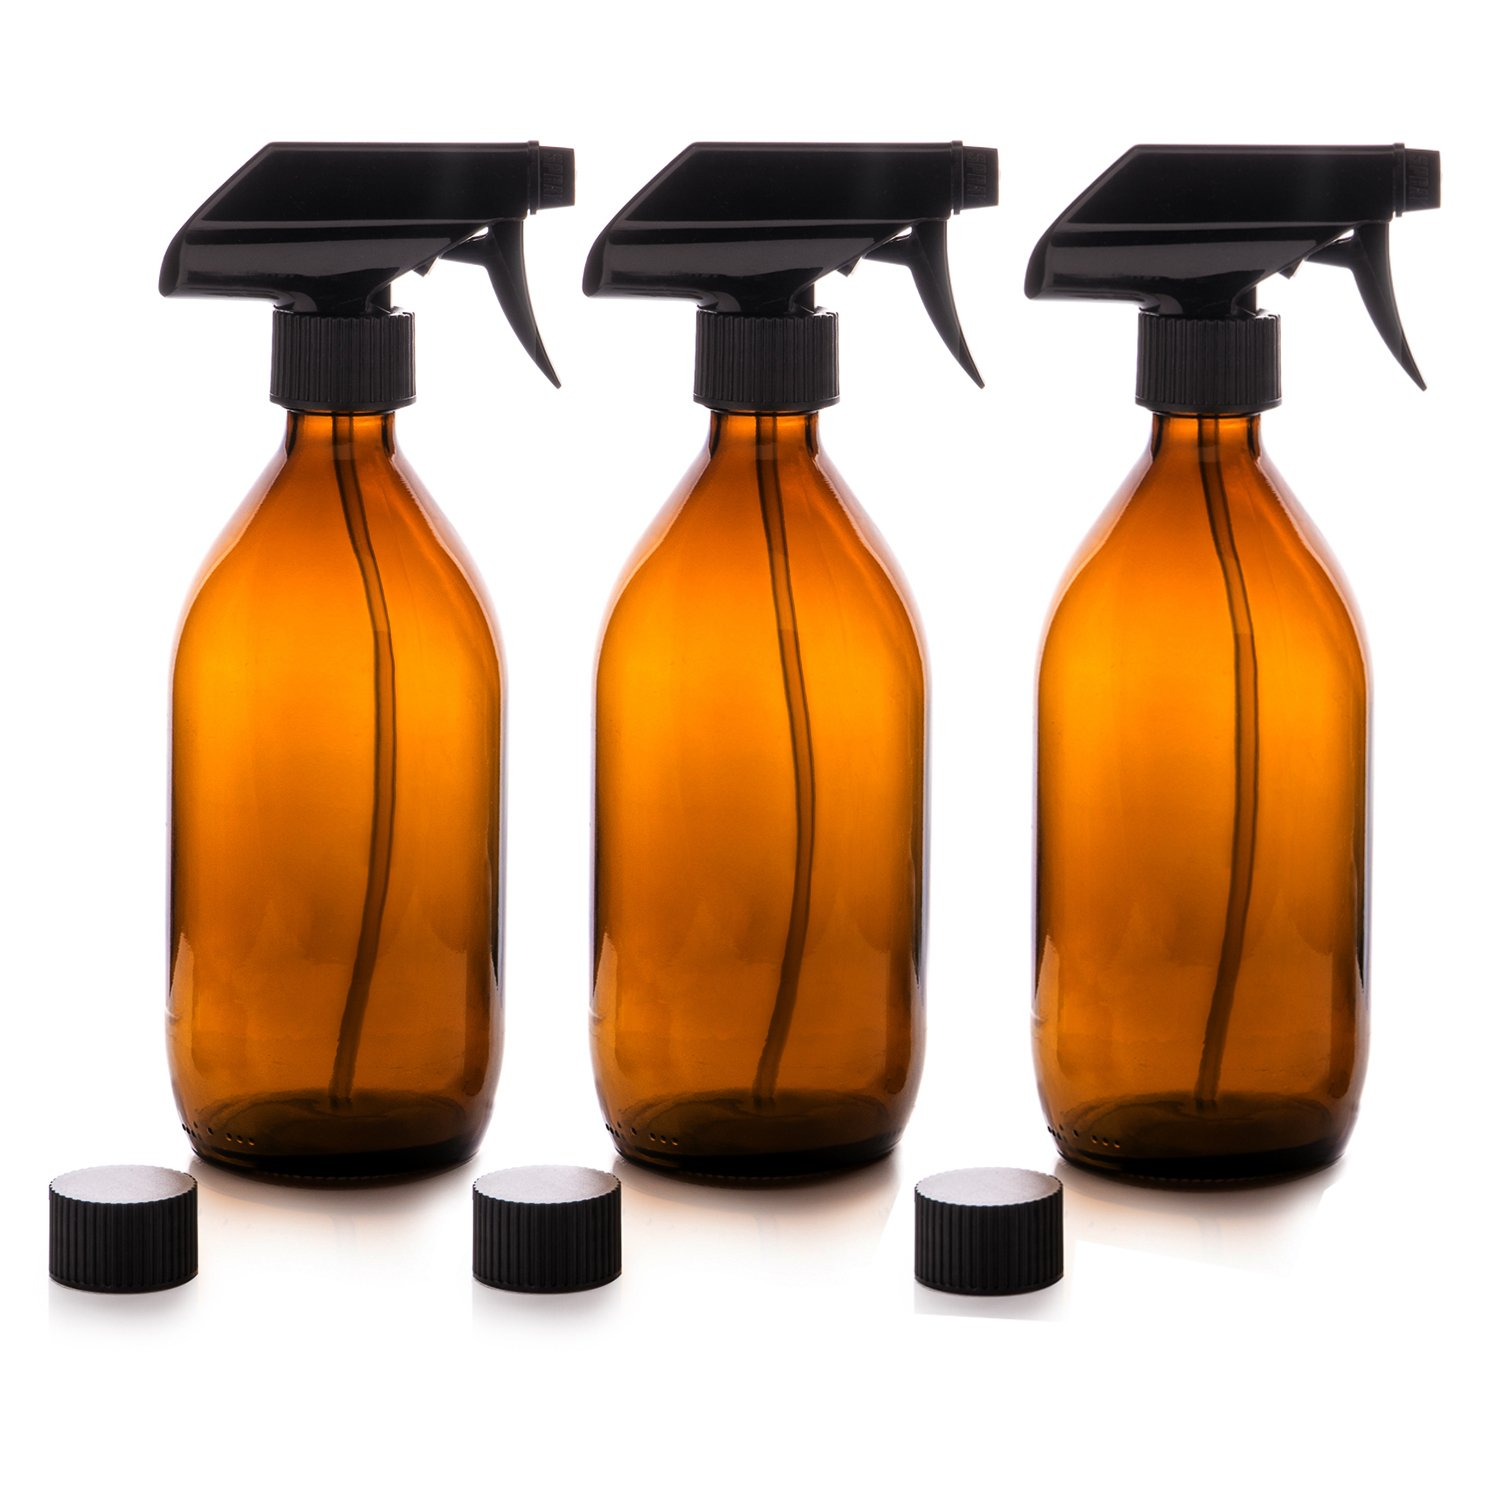 Premium Amber Glass Spray Bottles 500ml With Fine Mist Spray Trigger. Re Usable Bottles For Organic Essential Oils/Aromatherapy Oils, Eco Friendly Cleaning Products, Pet Care, Misting Plants And Flowers, Hair Care Spray And Mister (Amber, 3x 500ml) by Amazon